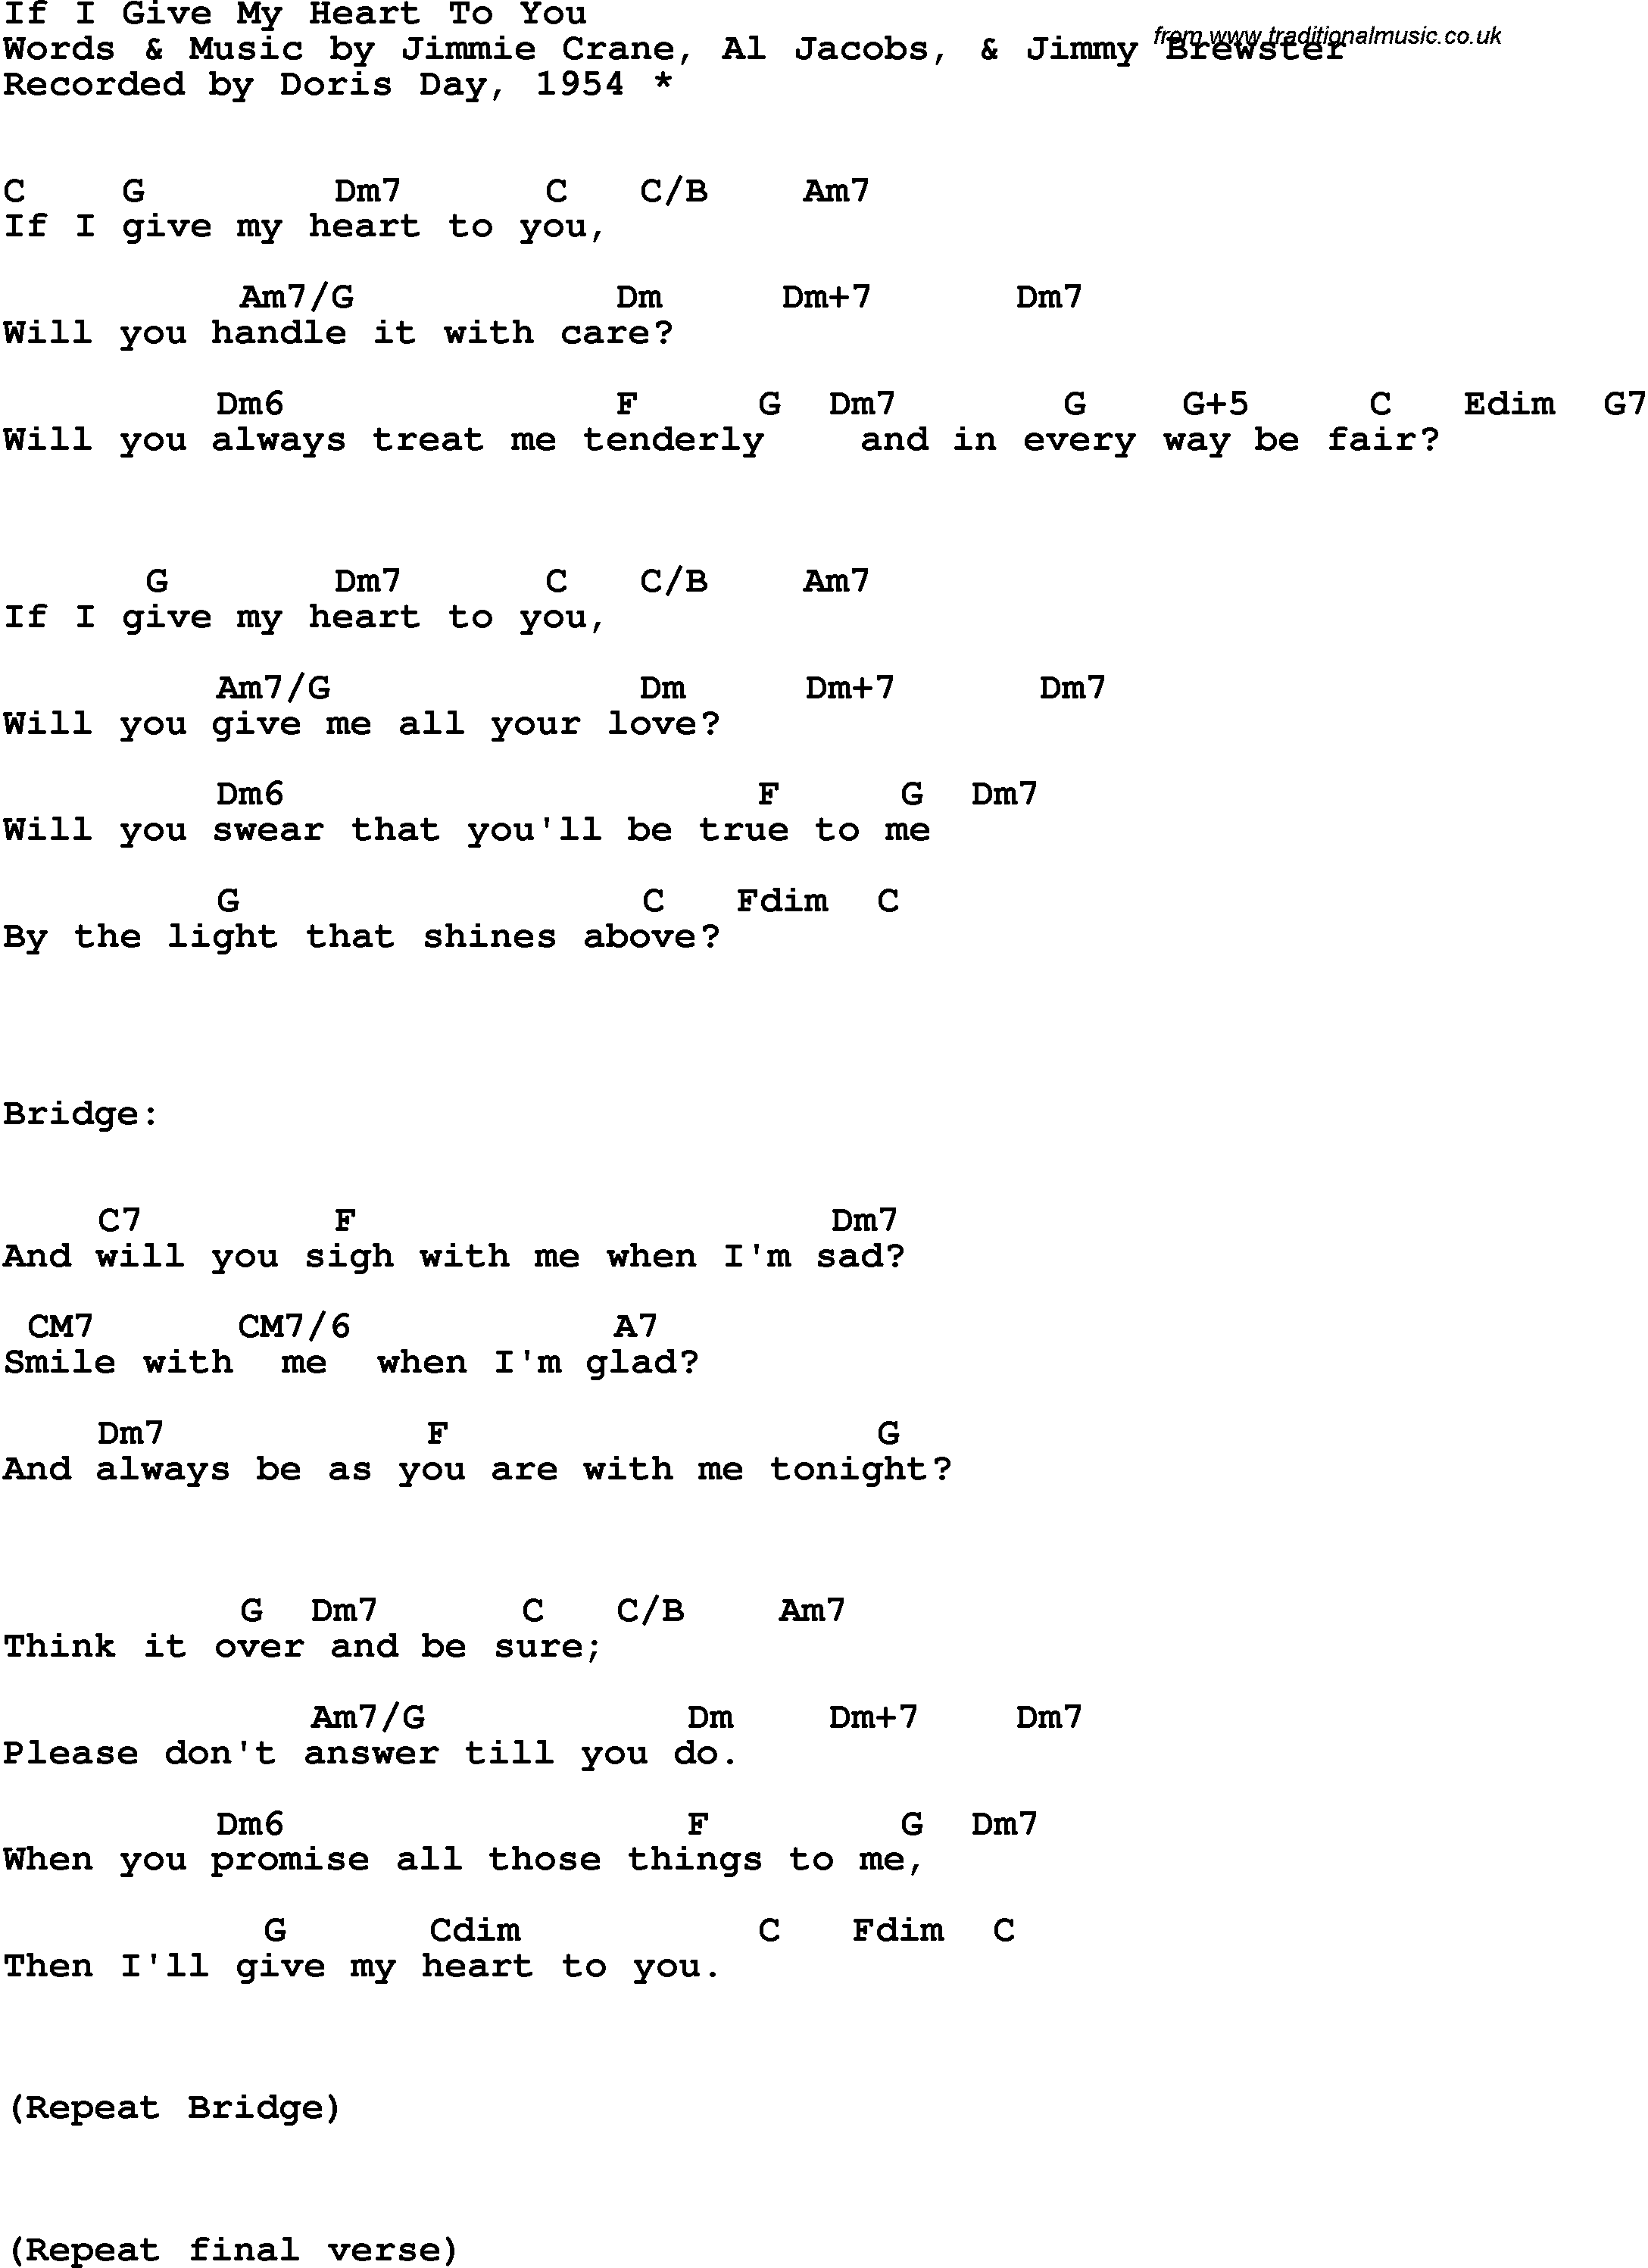 Song Lyrics With Guitar Chords For If I Give My Heart To You Doris